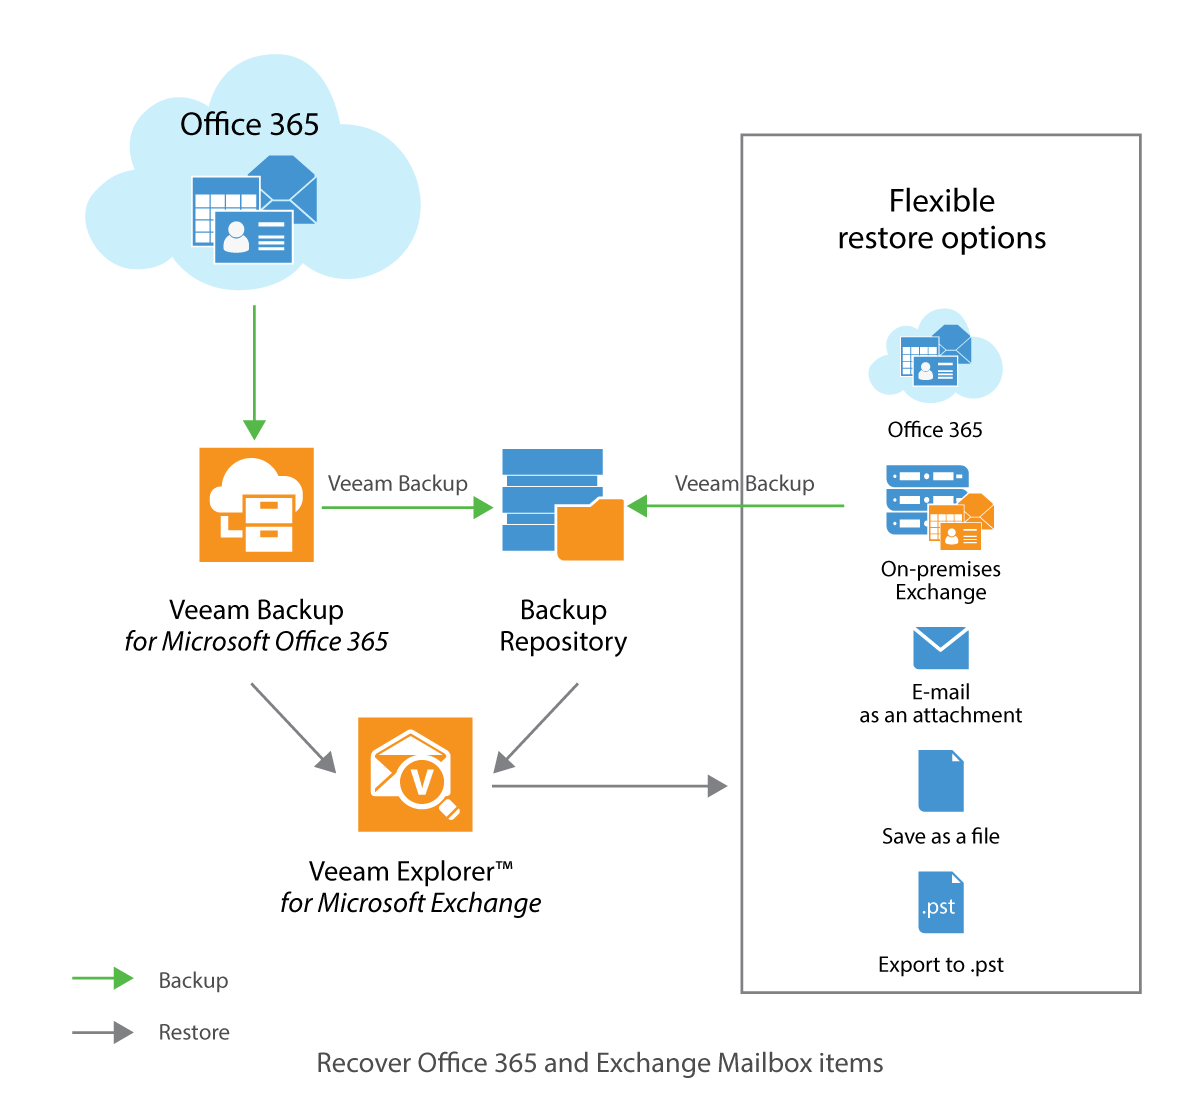 recover_office365_and_exchange_mailbox_items_v2.png